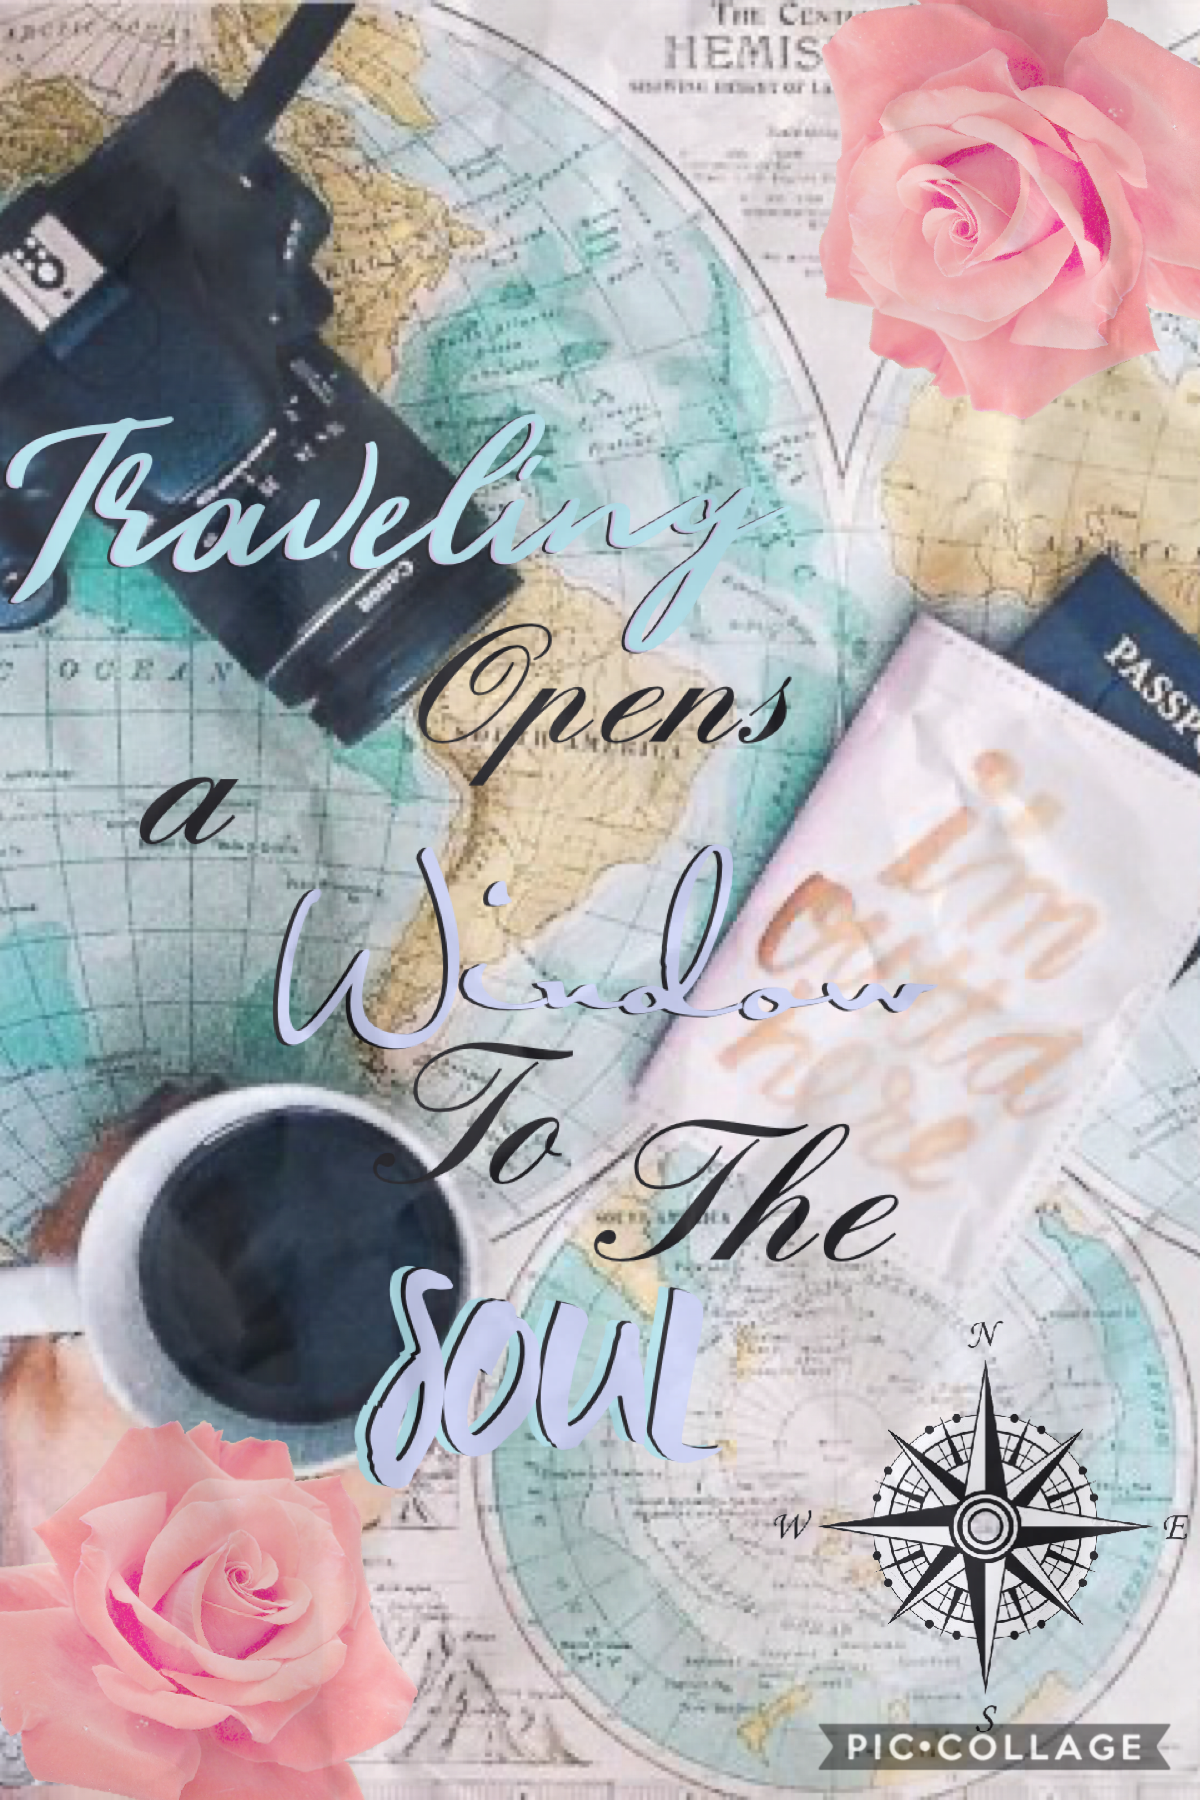 Traveling opens a window to the soul